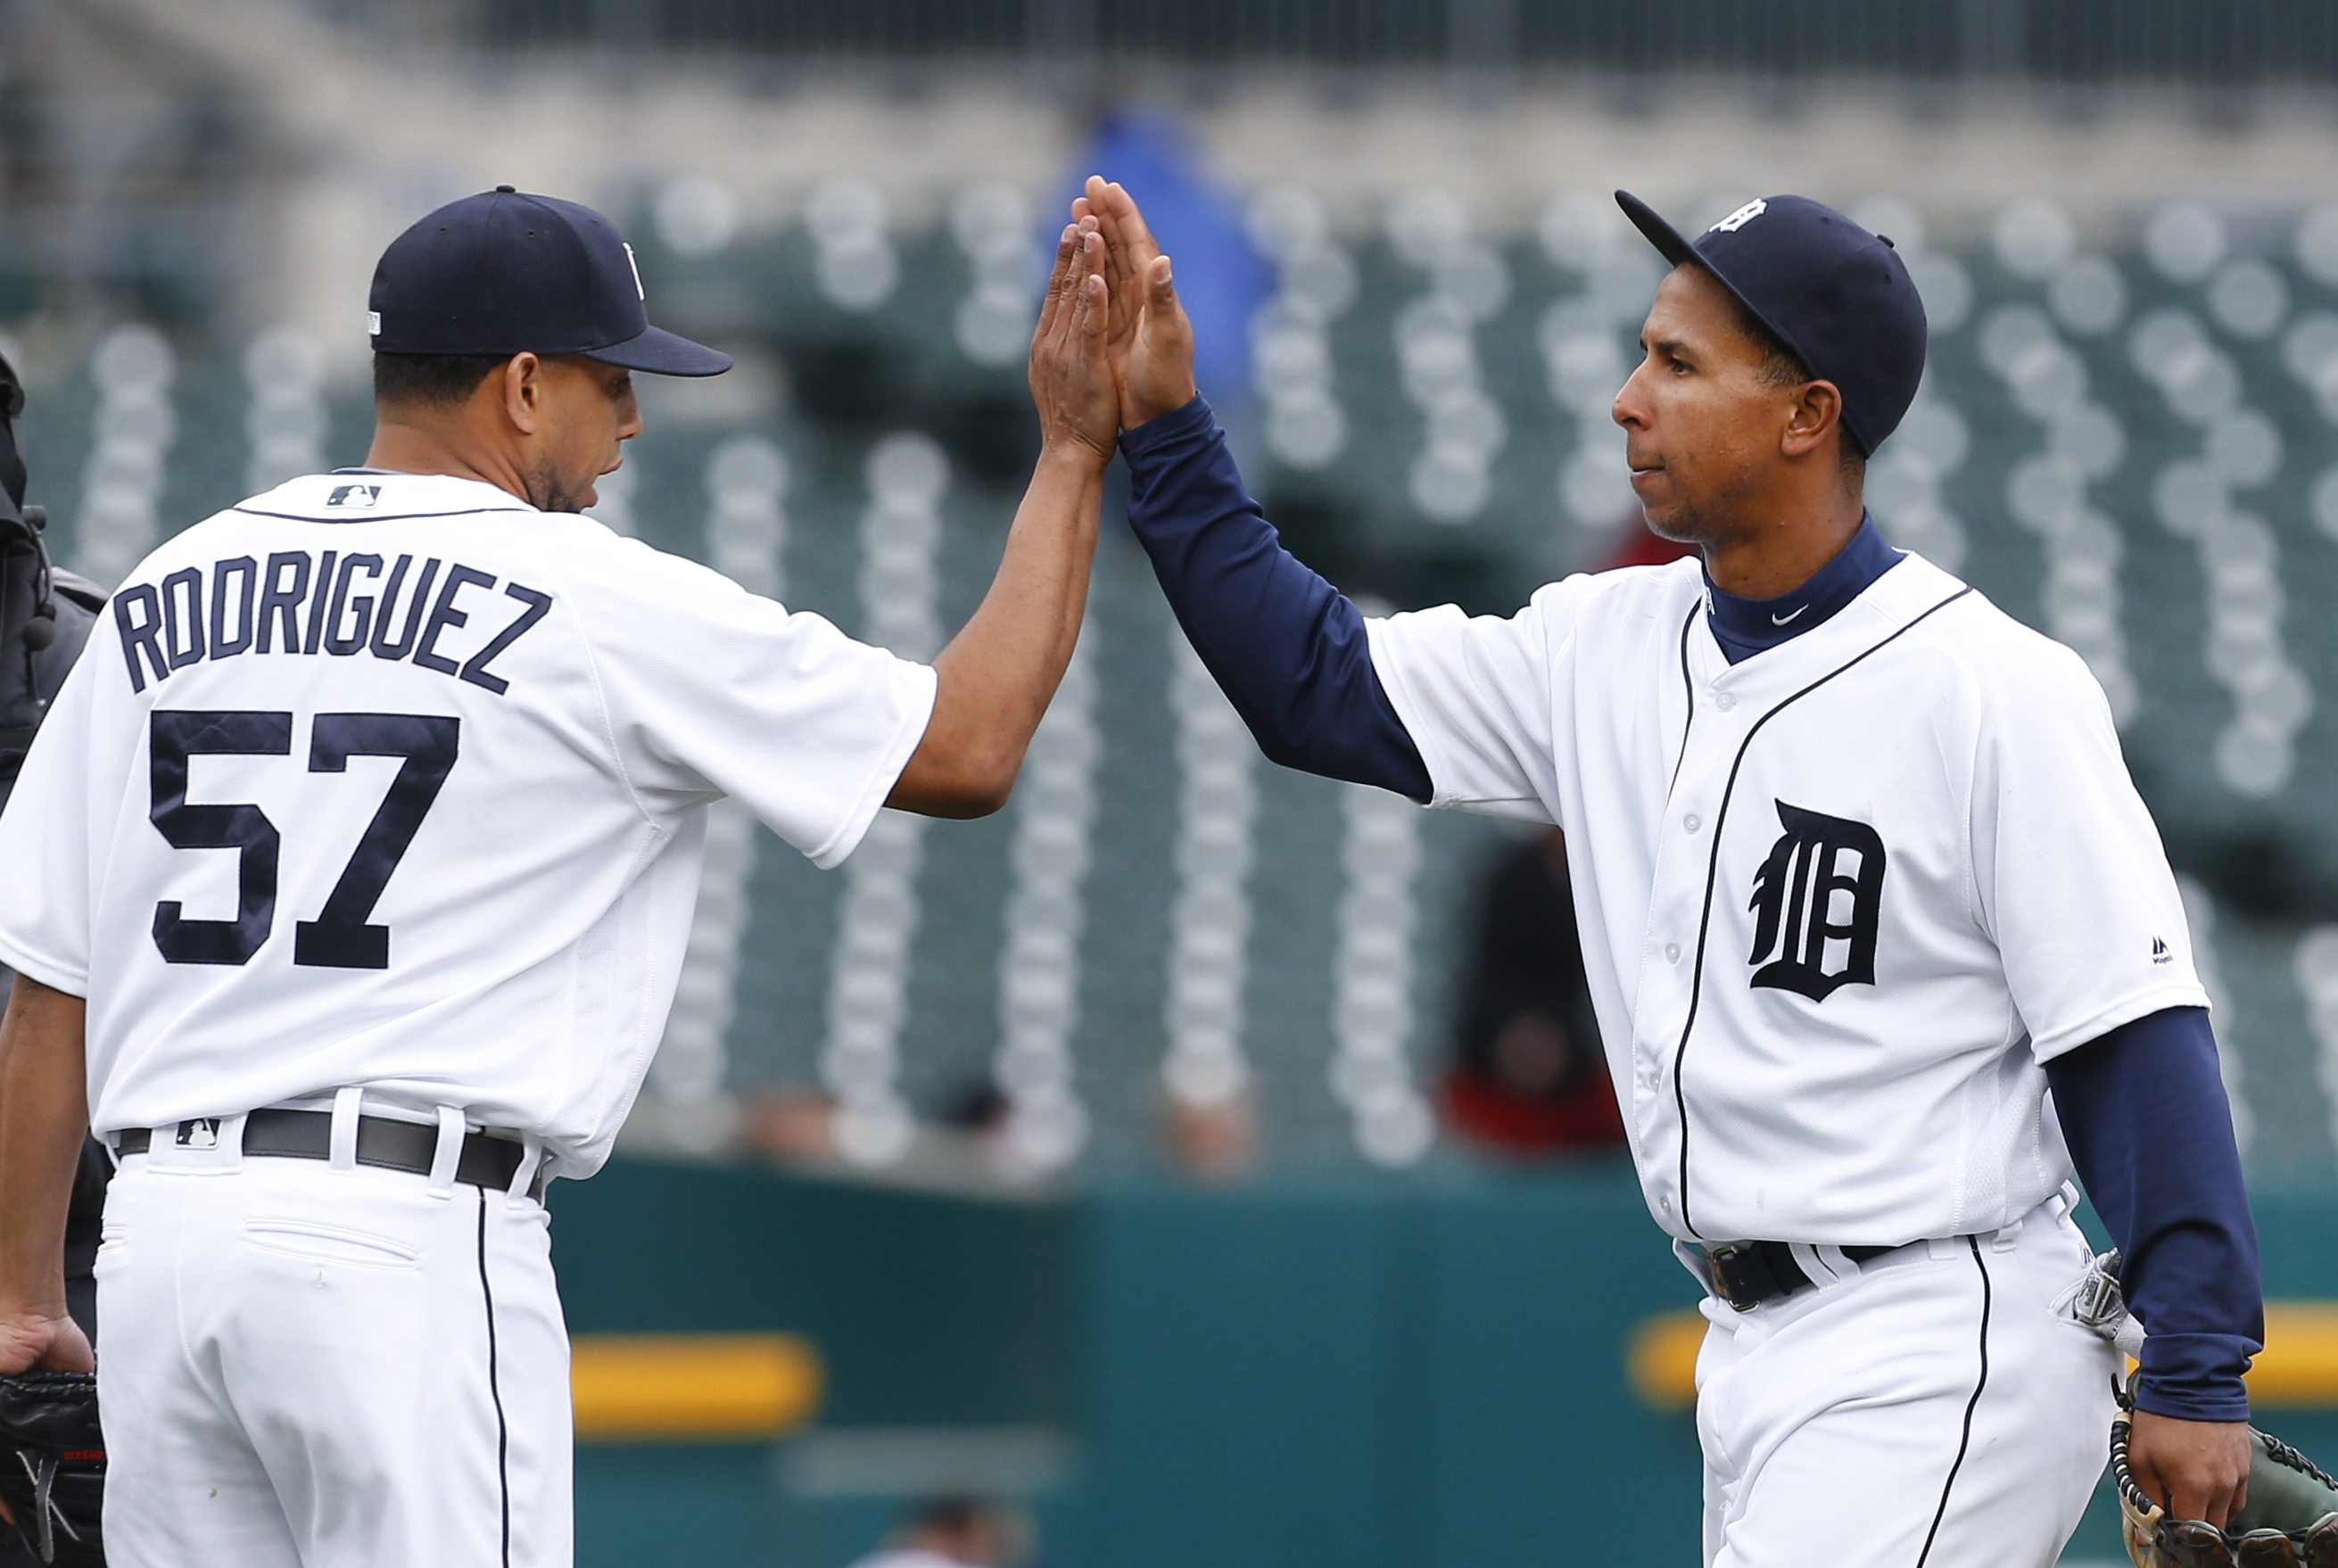 Detroit Tigers relief pitcher Francisco Rodriguez (57) congratulates Anthony Gose after beating the Oakland Athletics 7-3 in a baseball game in Detroit, Thursday, April 28, 2016. (AP Photo/Paul Sancya)